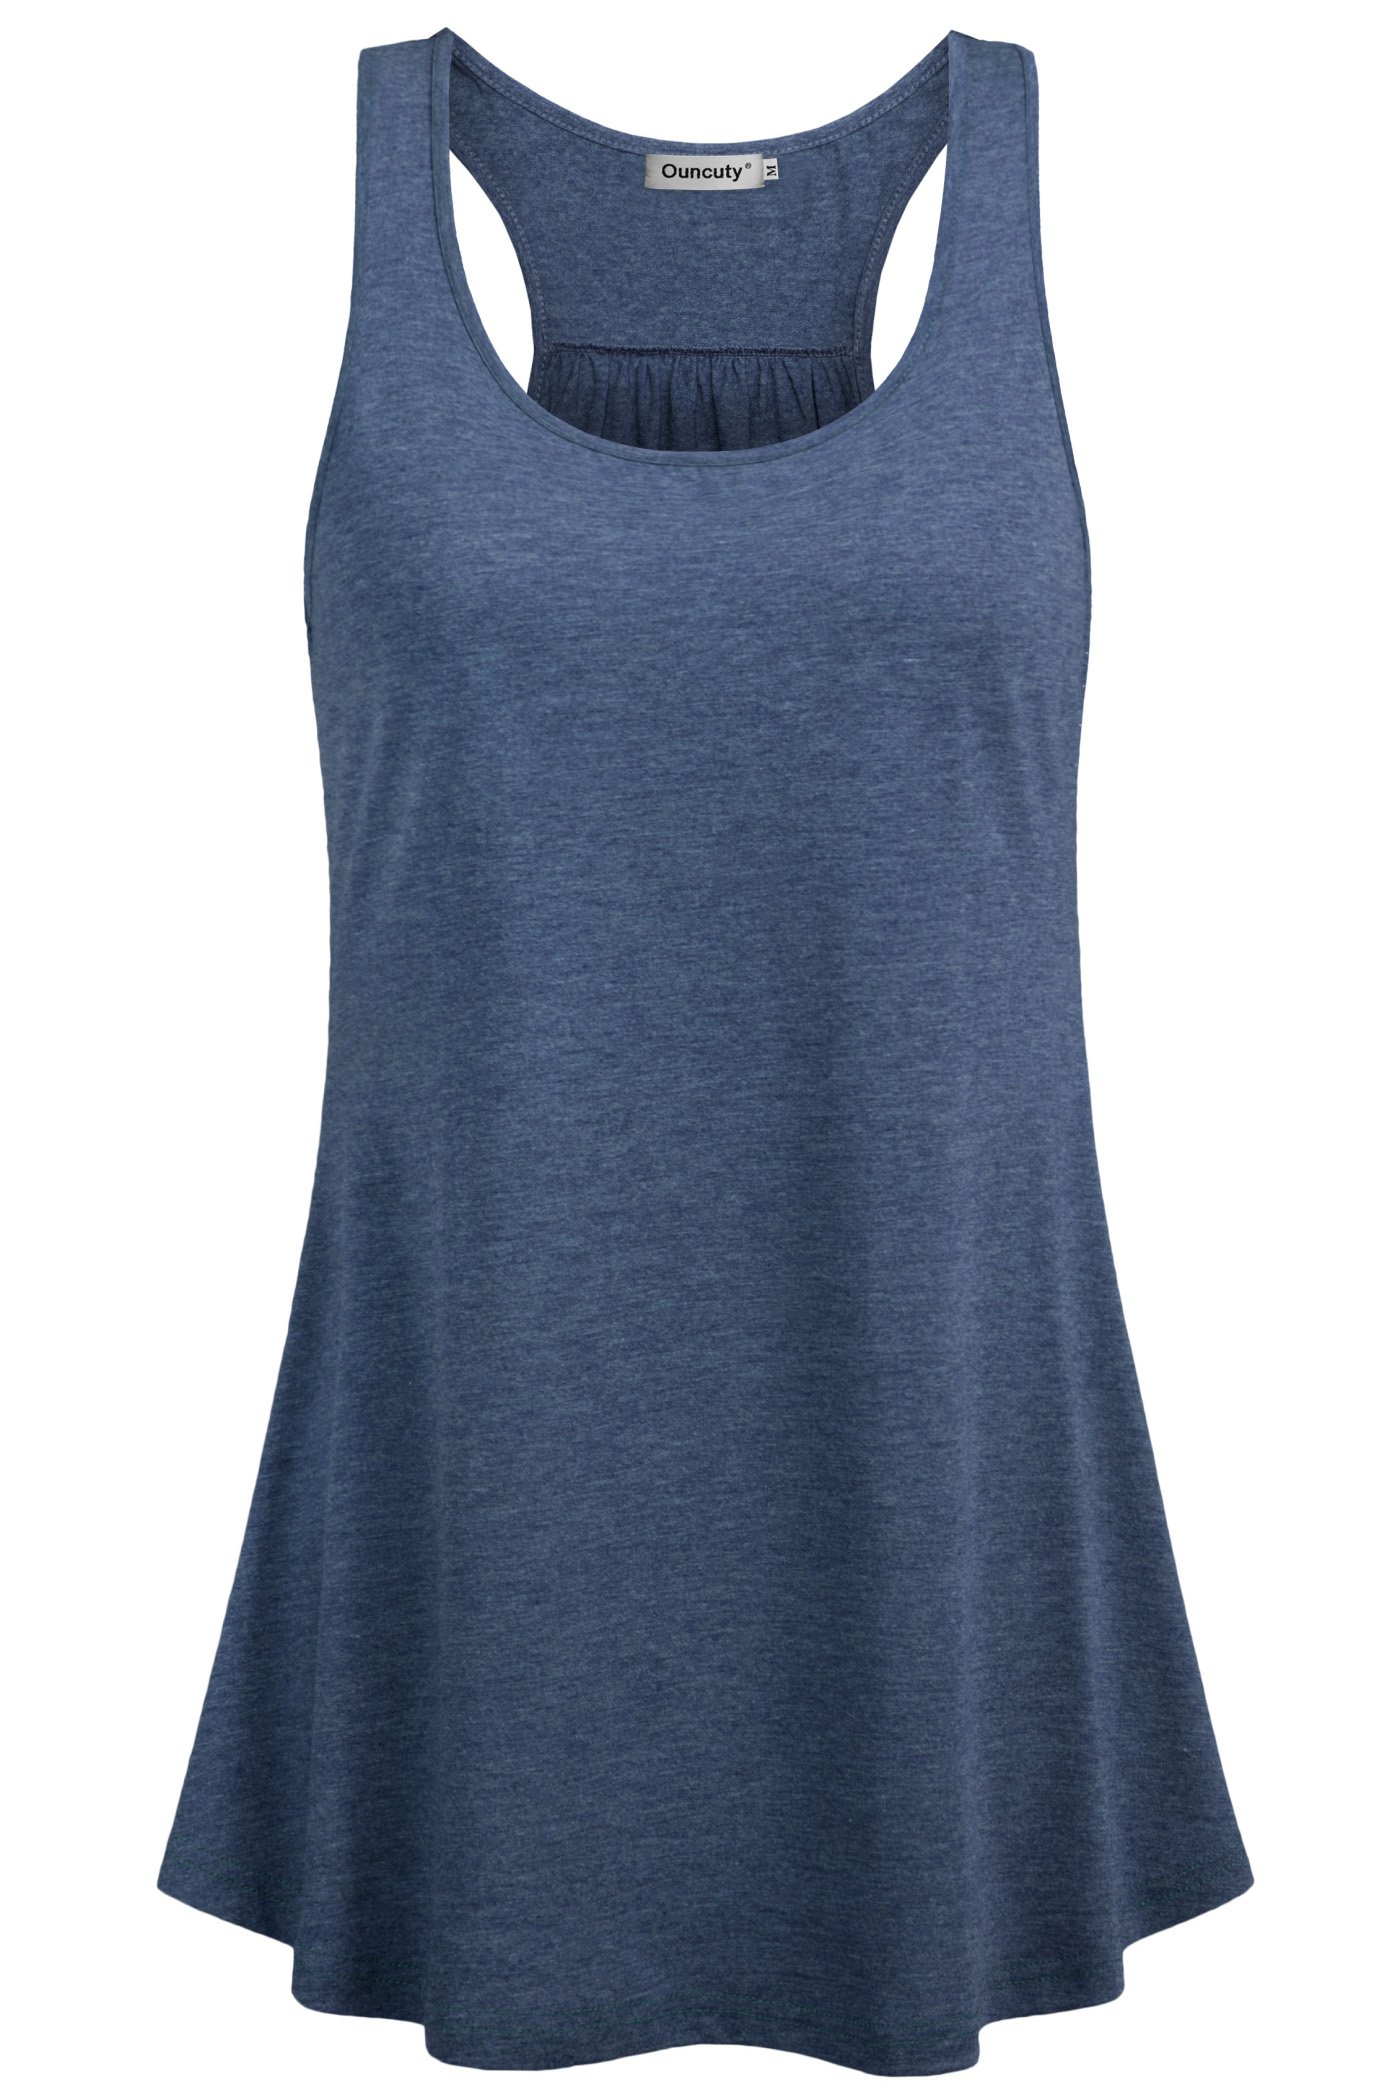 Ouncuty Workout Tank Tops for Women,Womens Fitness 1X Tunic Tanks Sleeveless Empire Wasit Tunics Juniors Summer Activewear Ladies Running Top Loose Fit Scoop Neck Sleeveless Shirt Dark Blue XL